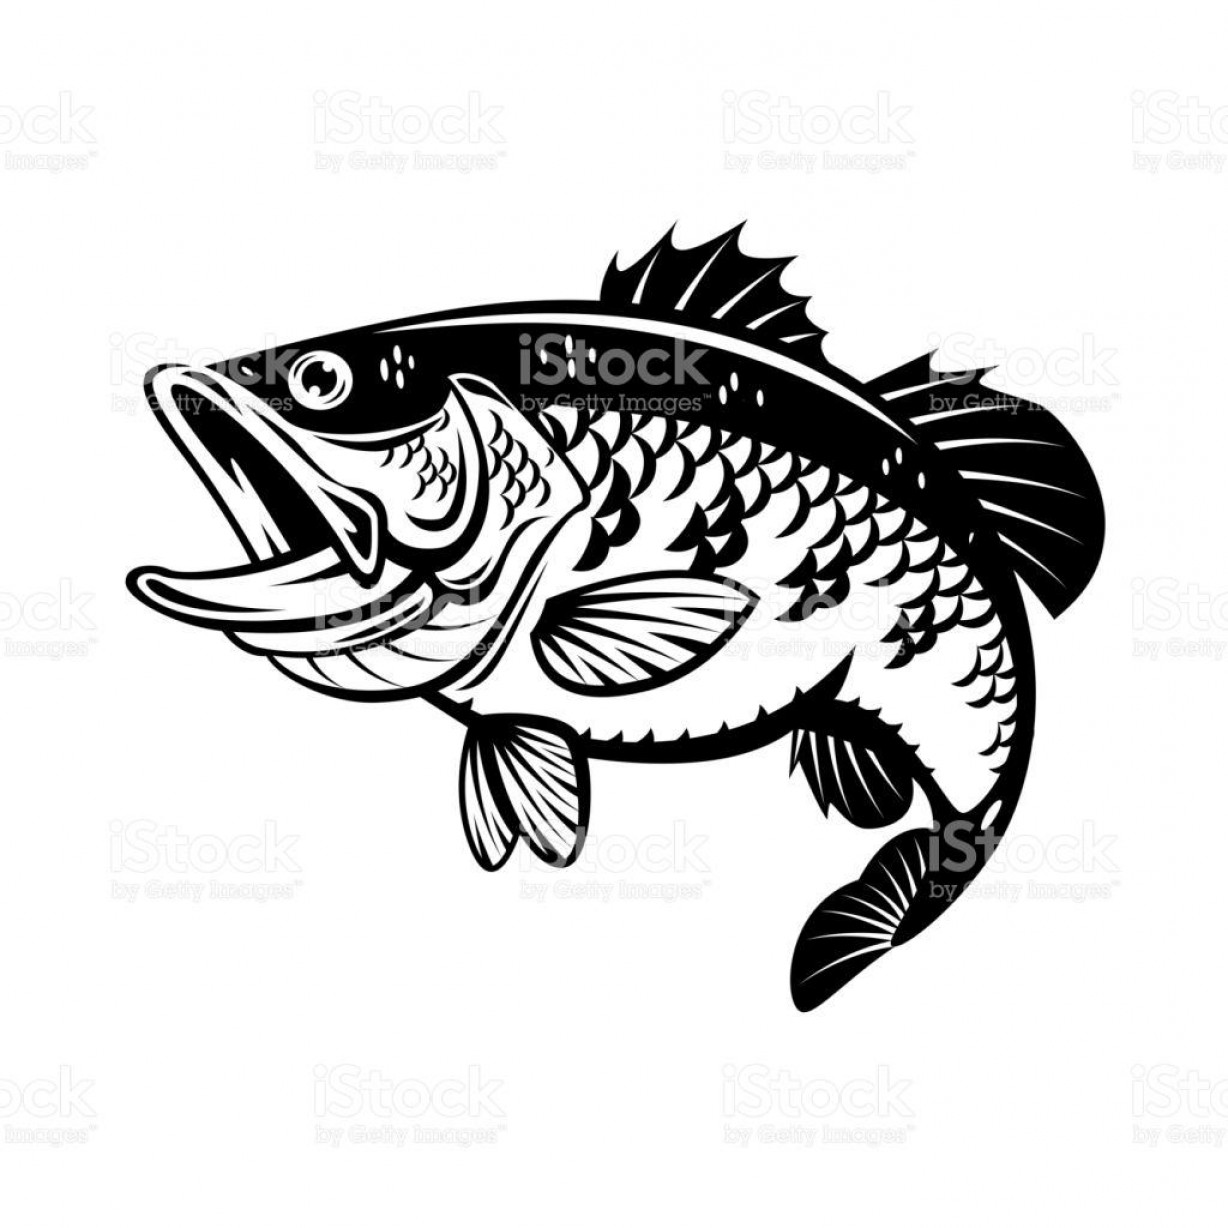 Largemouth Bass Silhouette Vector: Best Free Graphic Bass Fish Vector Images